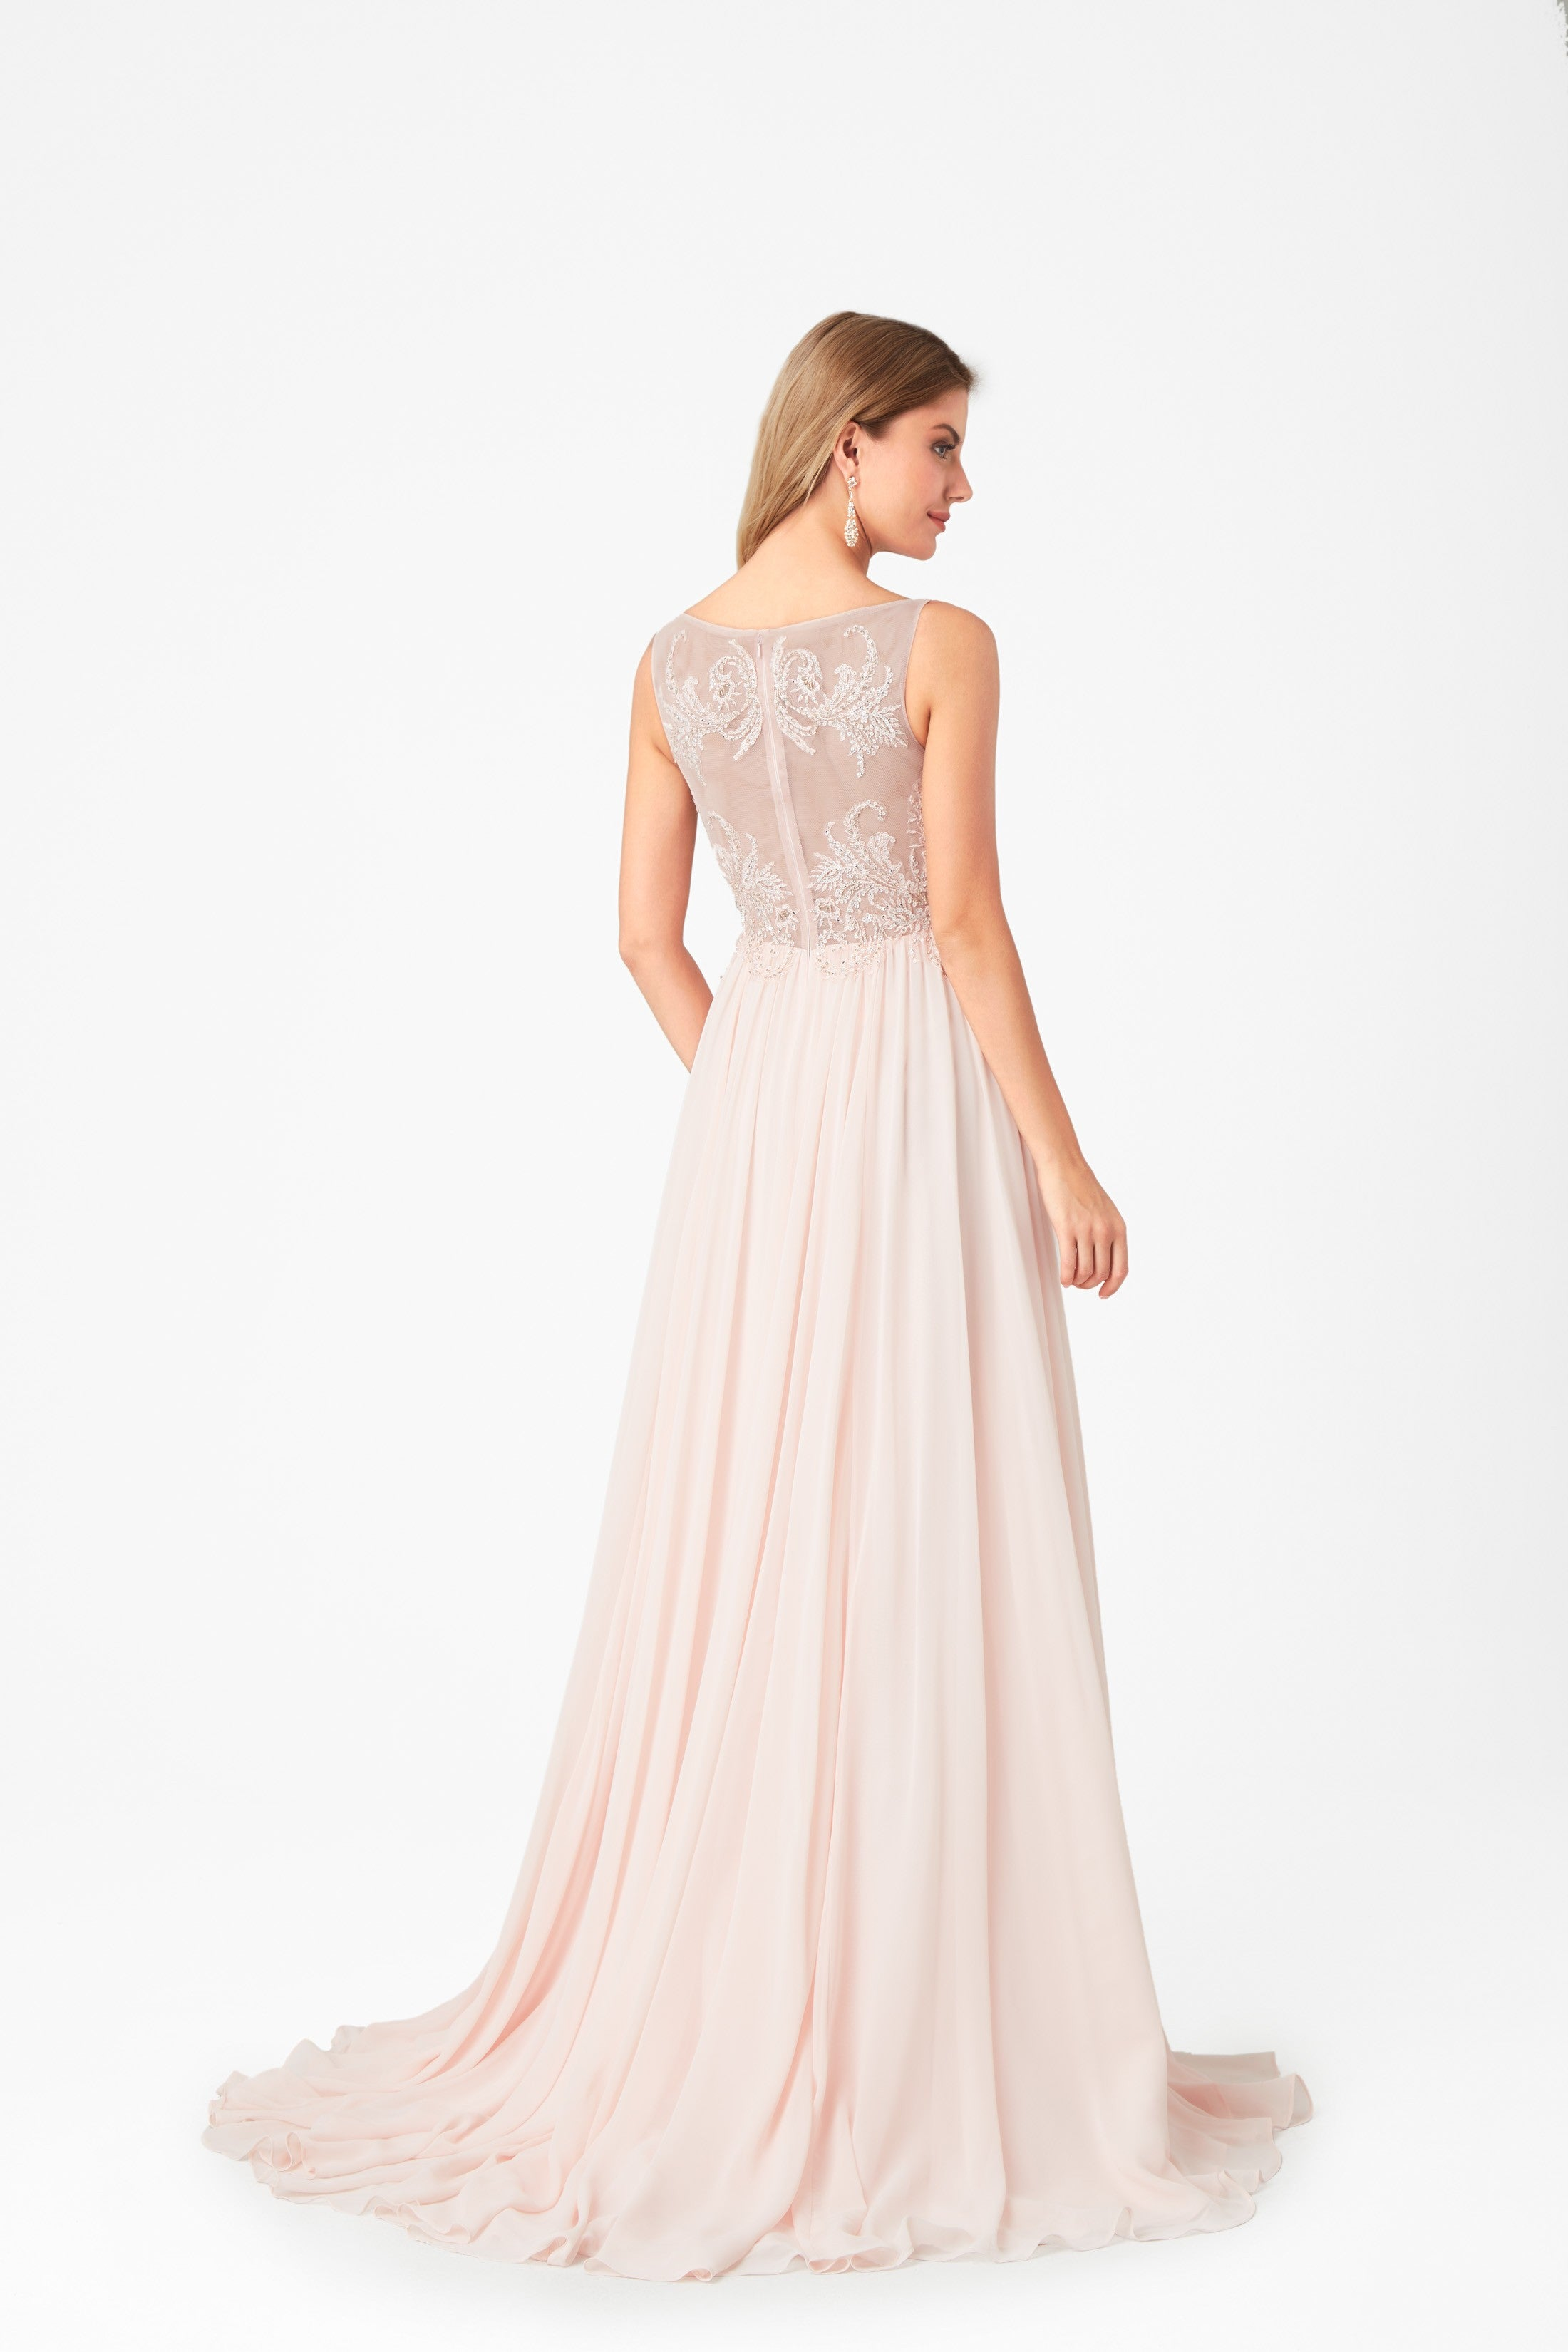 973b4cadb5fbe Soft petal pink formal dress with jewelled bodice and illusion  back-4XLVC4344